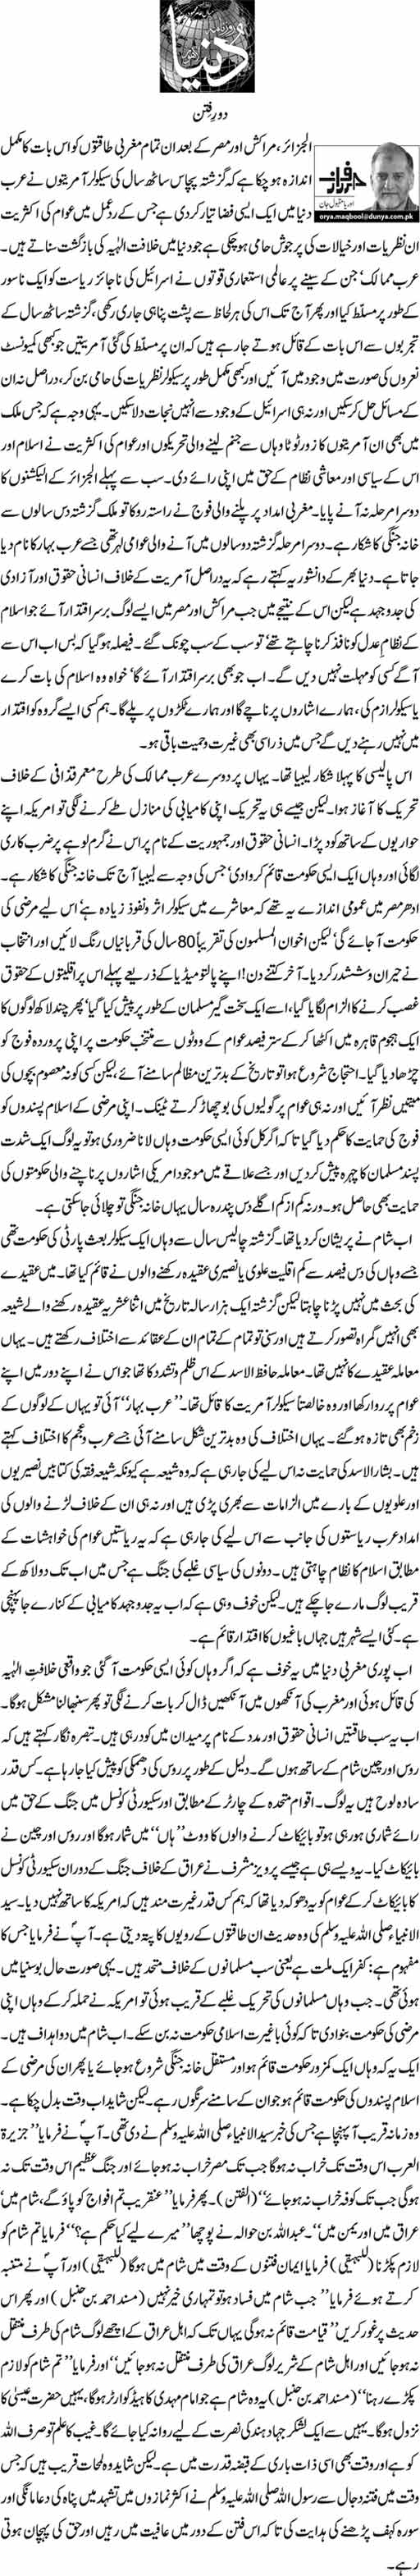 Orya Maqbool Jan Column on Syria & Egypt